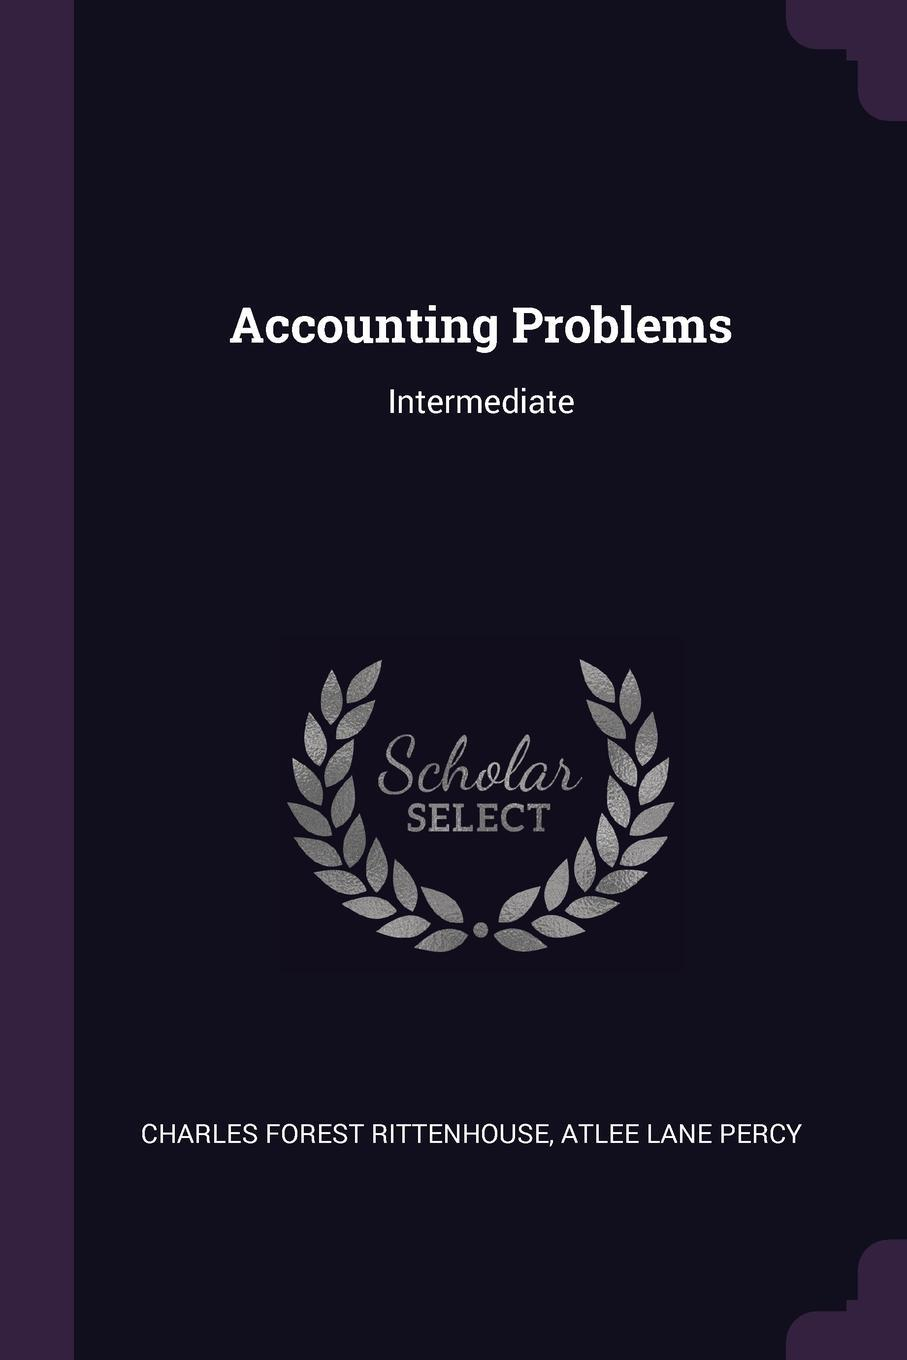 Charles Forest Rittenhouse, Atlee Lane Percy. Accounting Problems. Intermediate